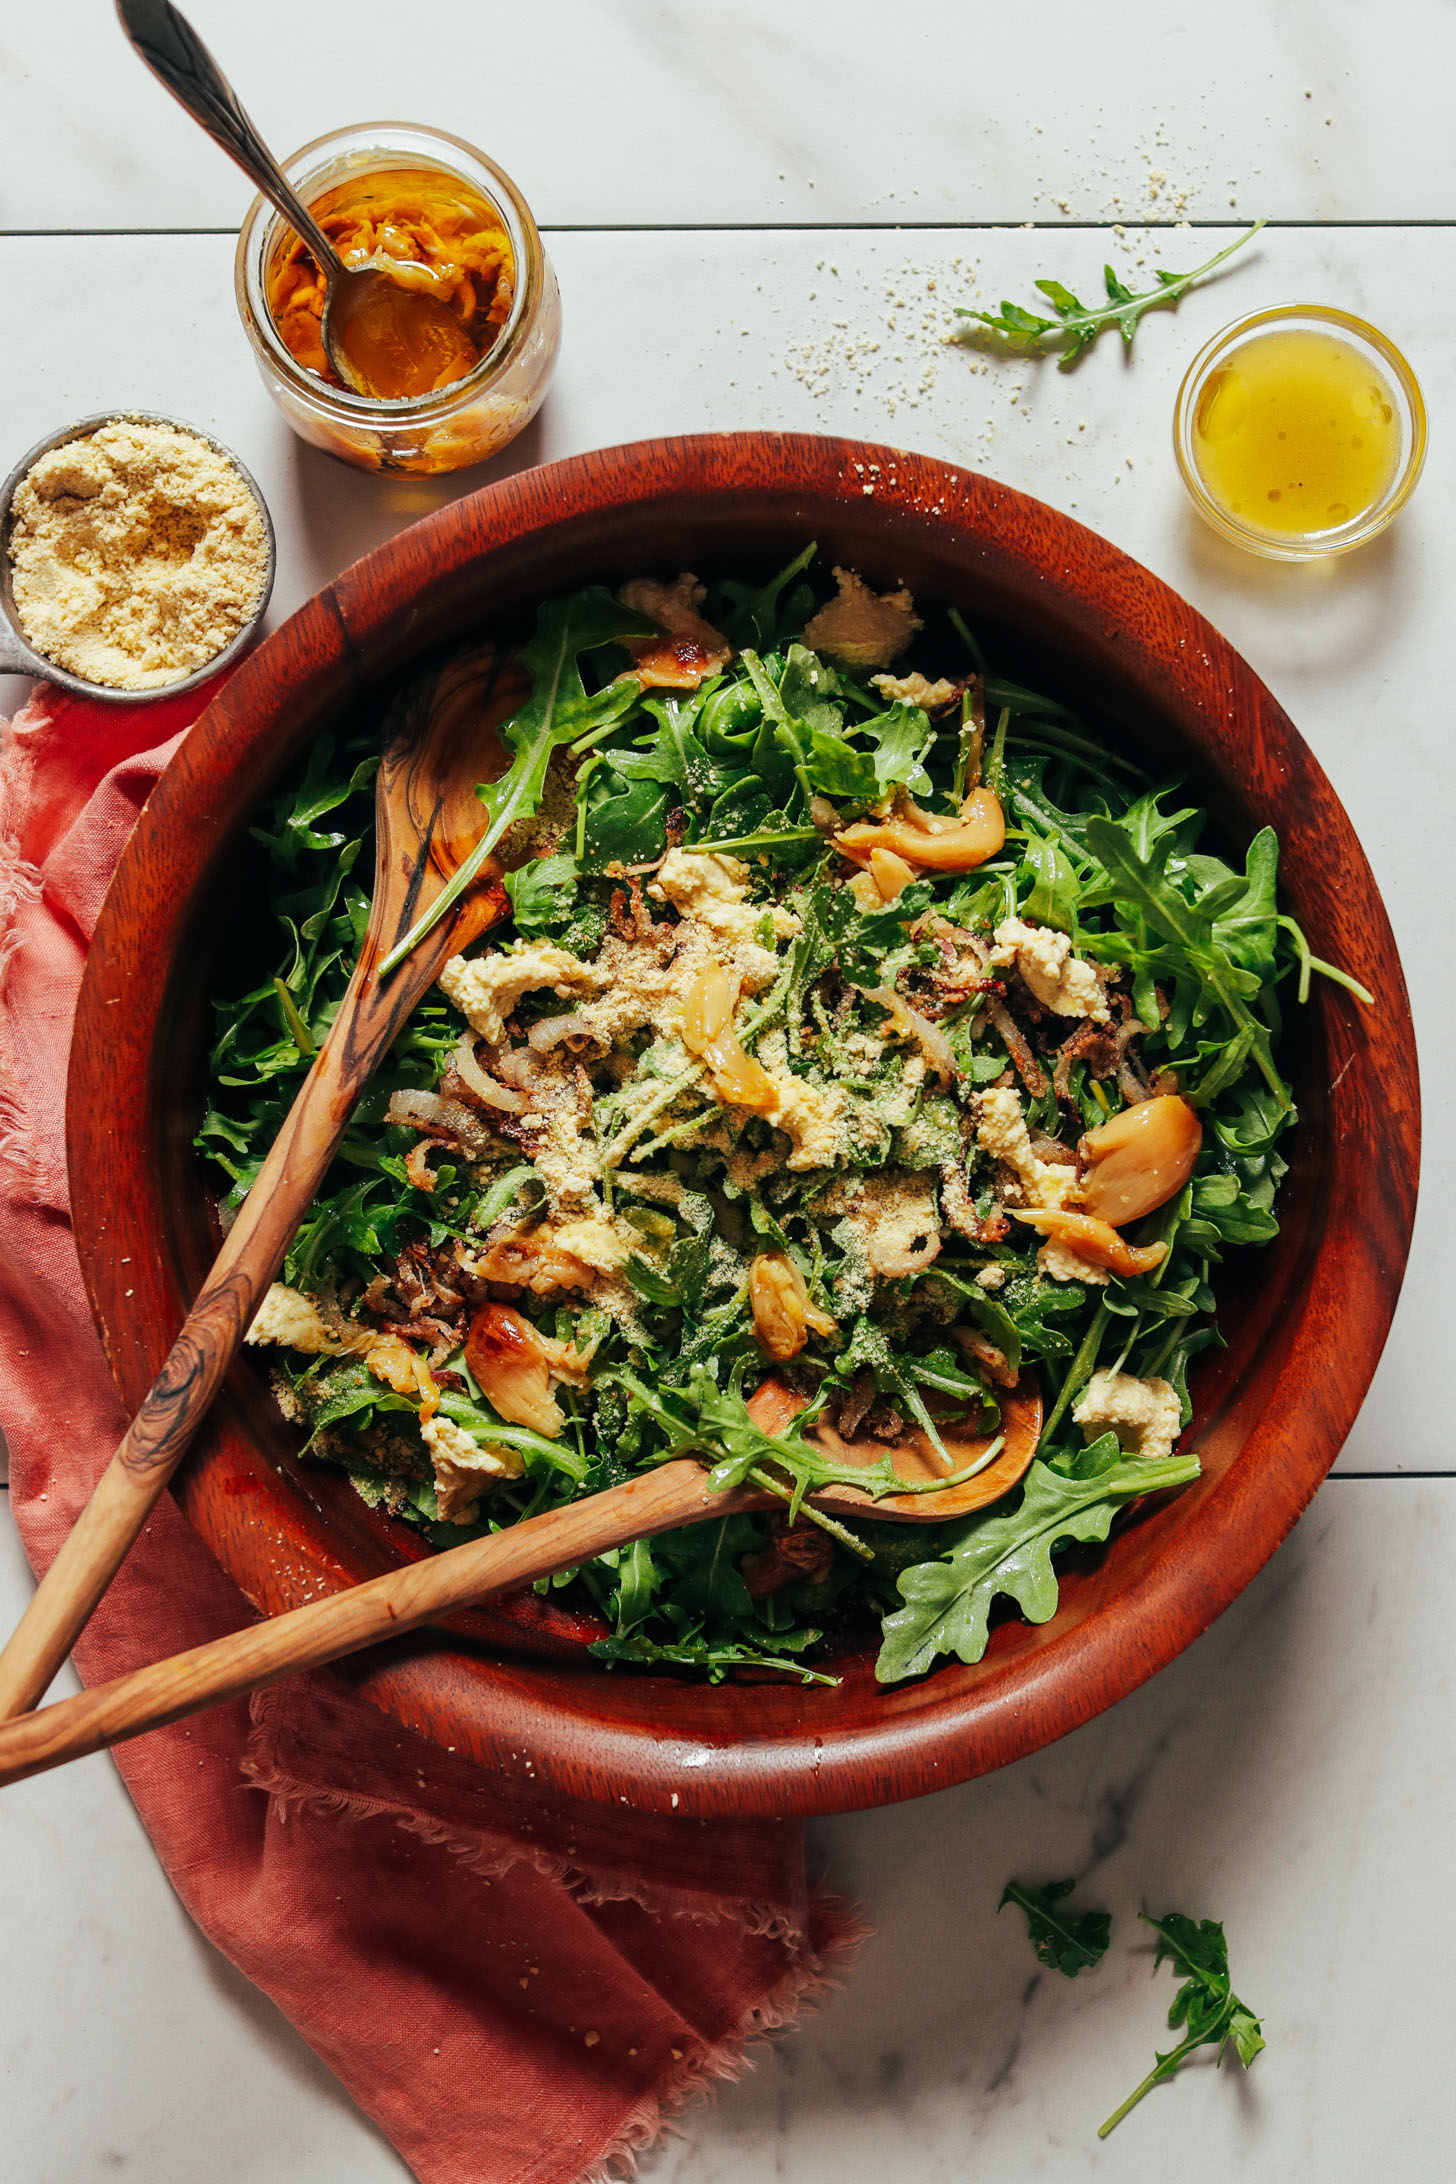 Large wooden bowl filled with our delicious House Salad recipe made with roasted garlic cloves